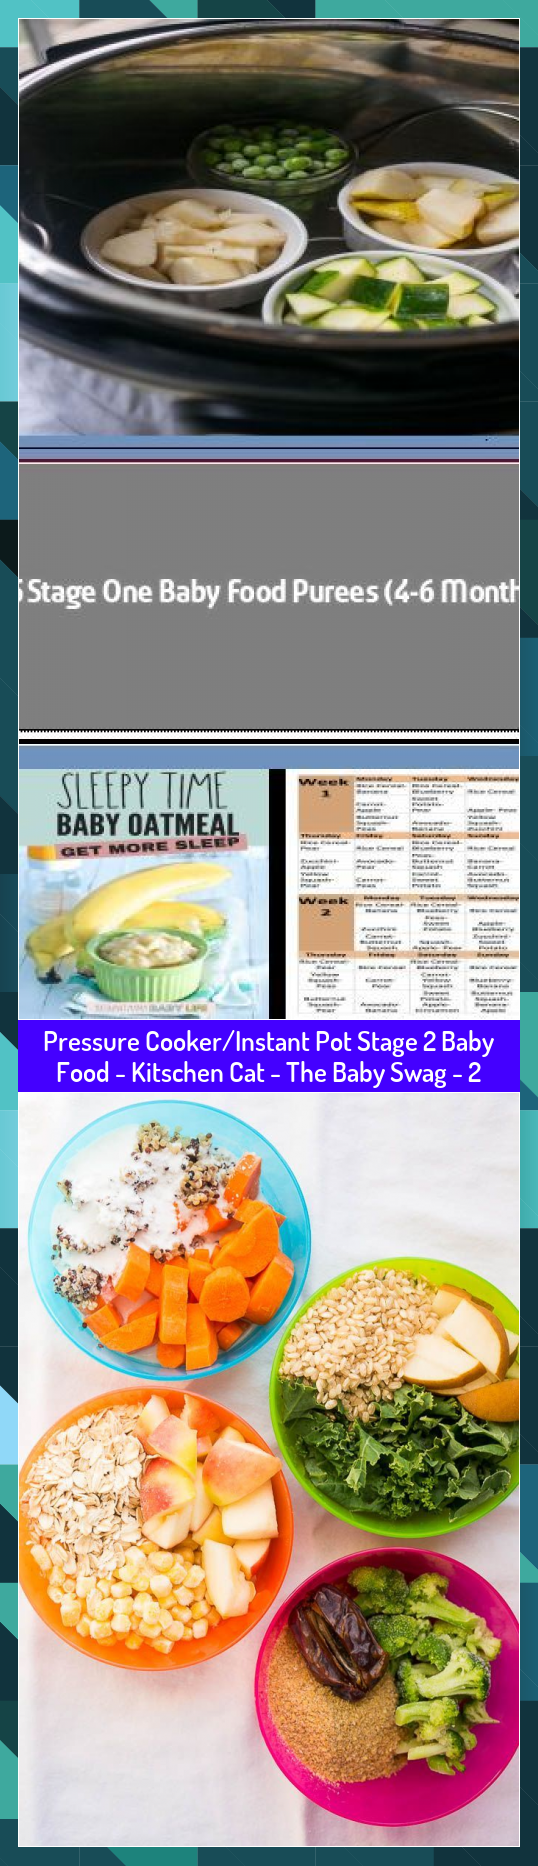 Pressure CookerInstant Pot Stage 2 Baby Food  Kitschen Cat  The Baby Swag  2